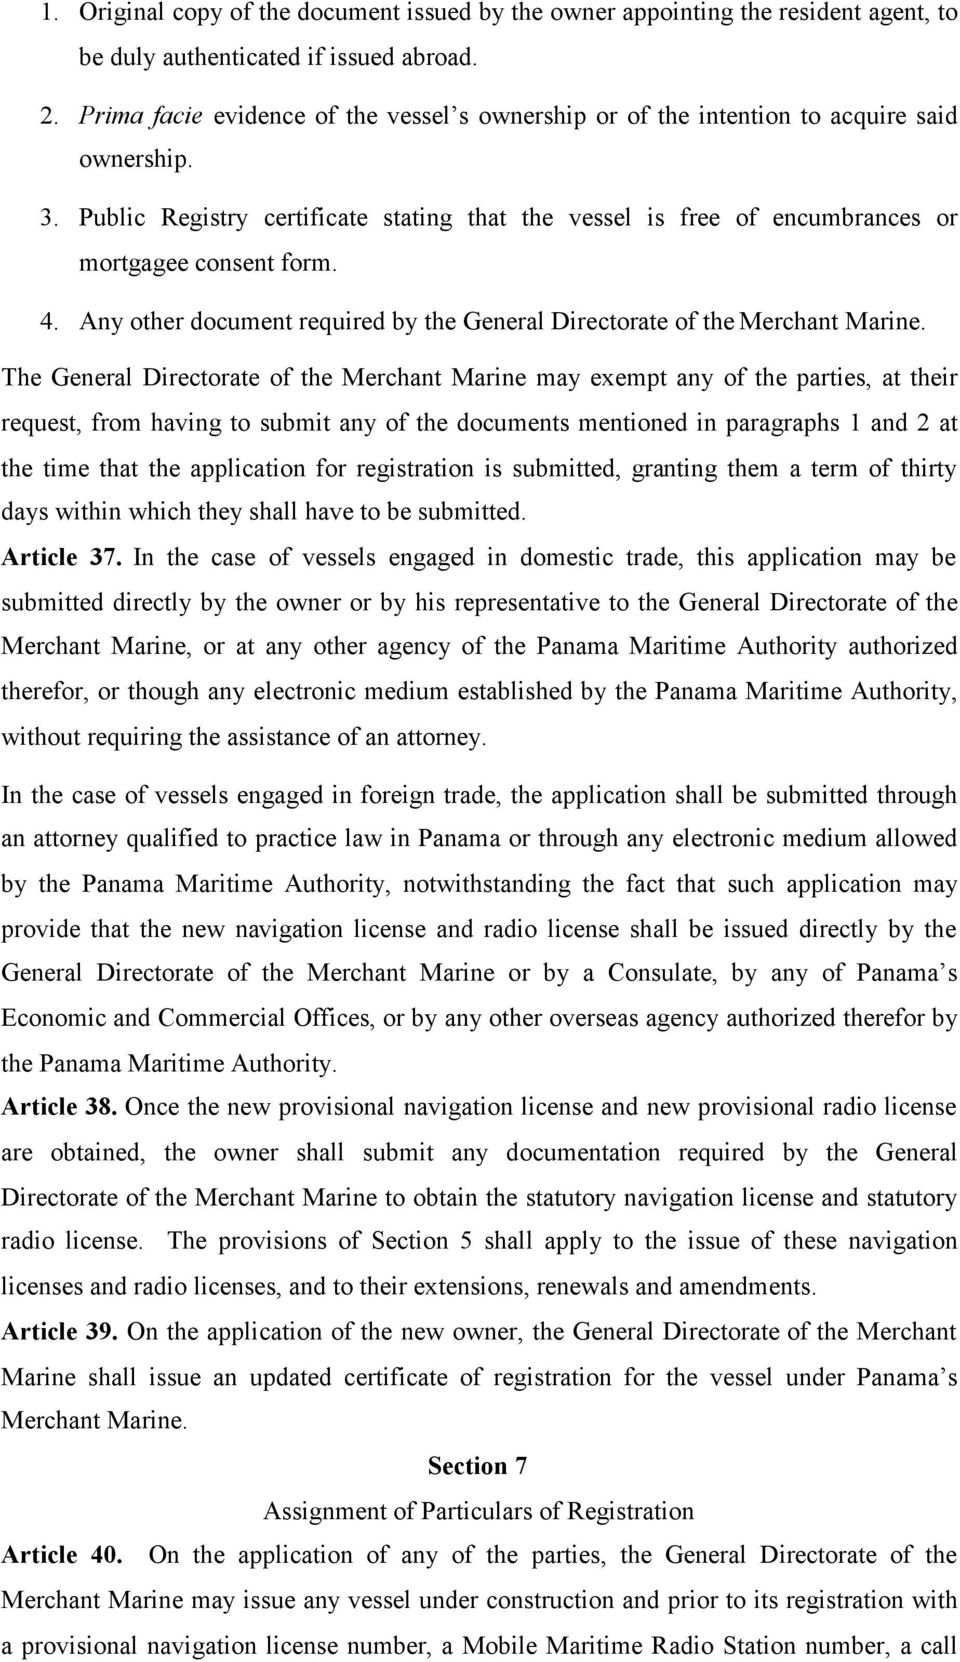 4. Any other document required by the General Directorate of the Merchant Marine.